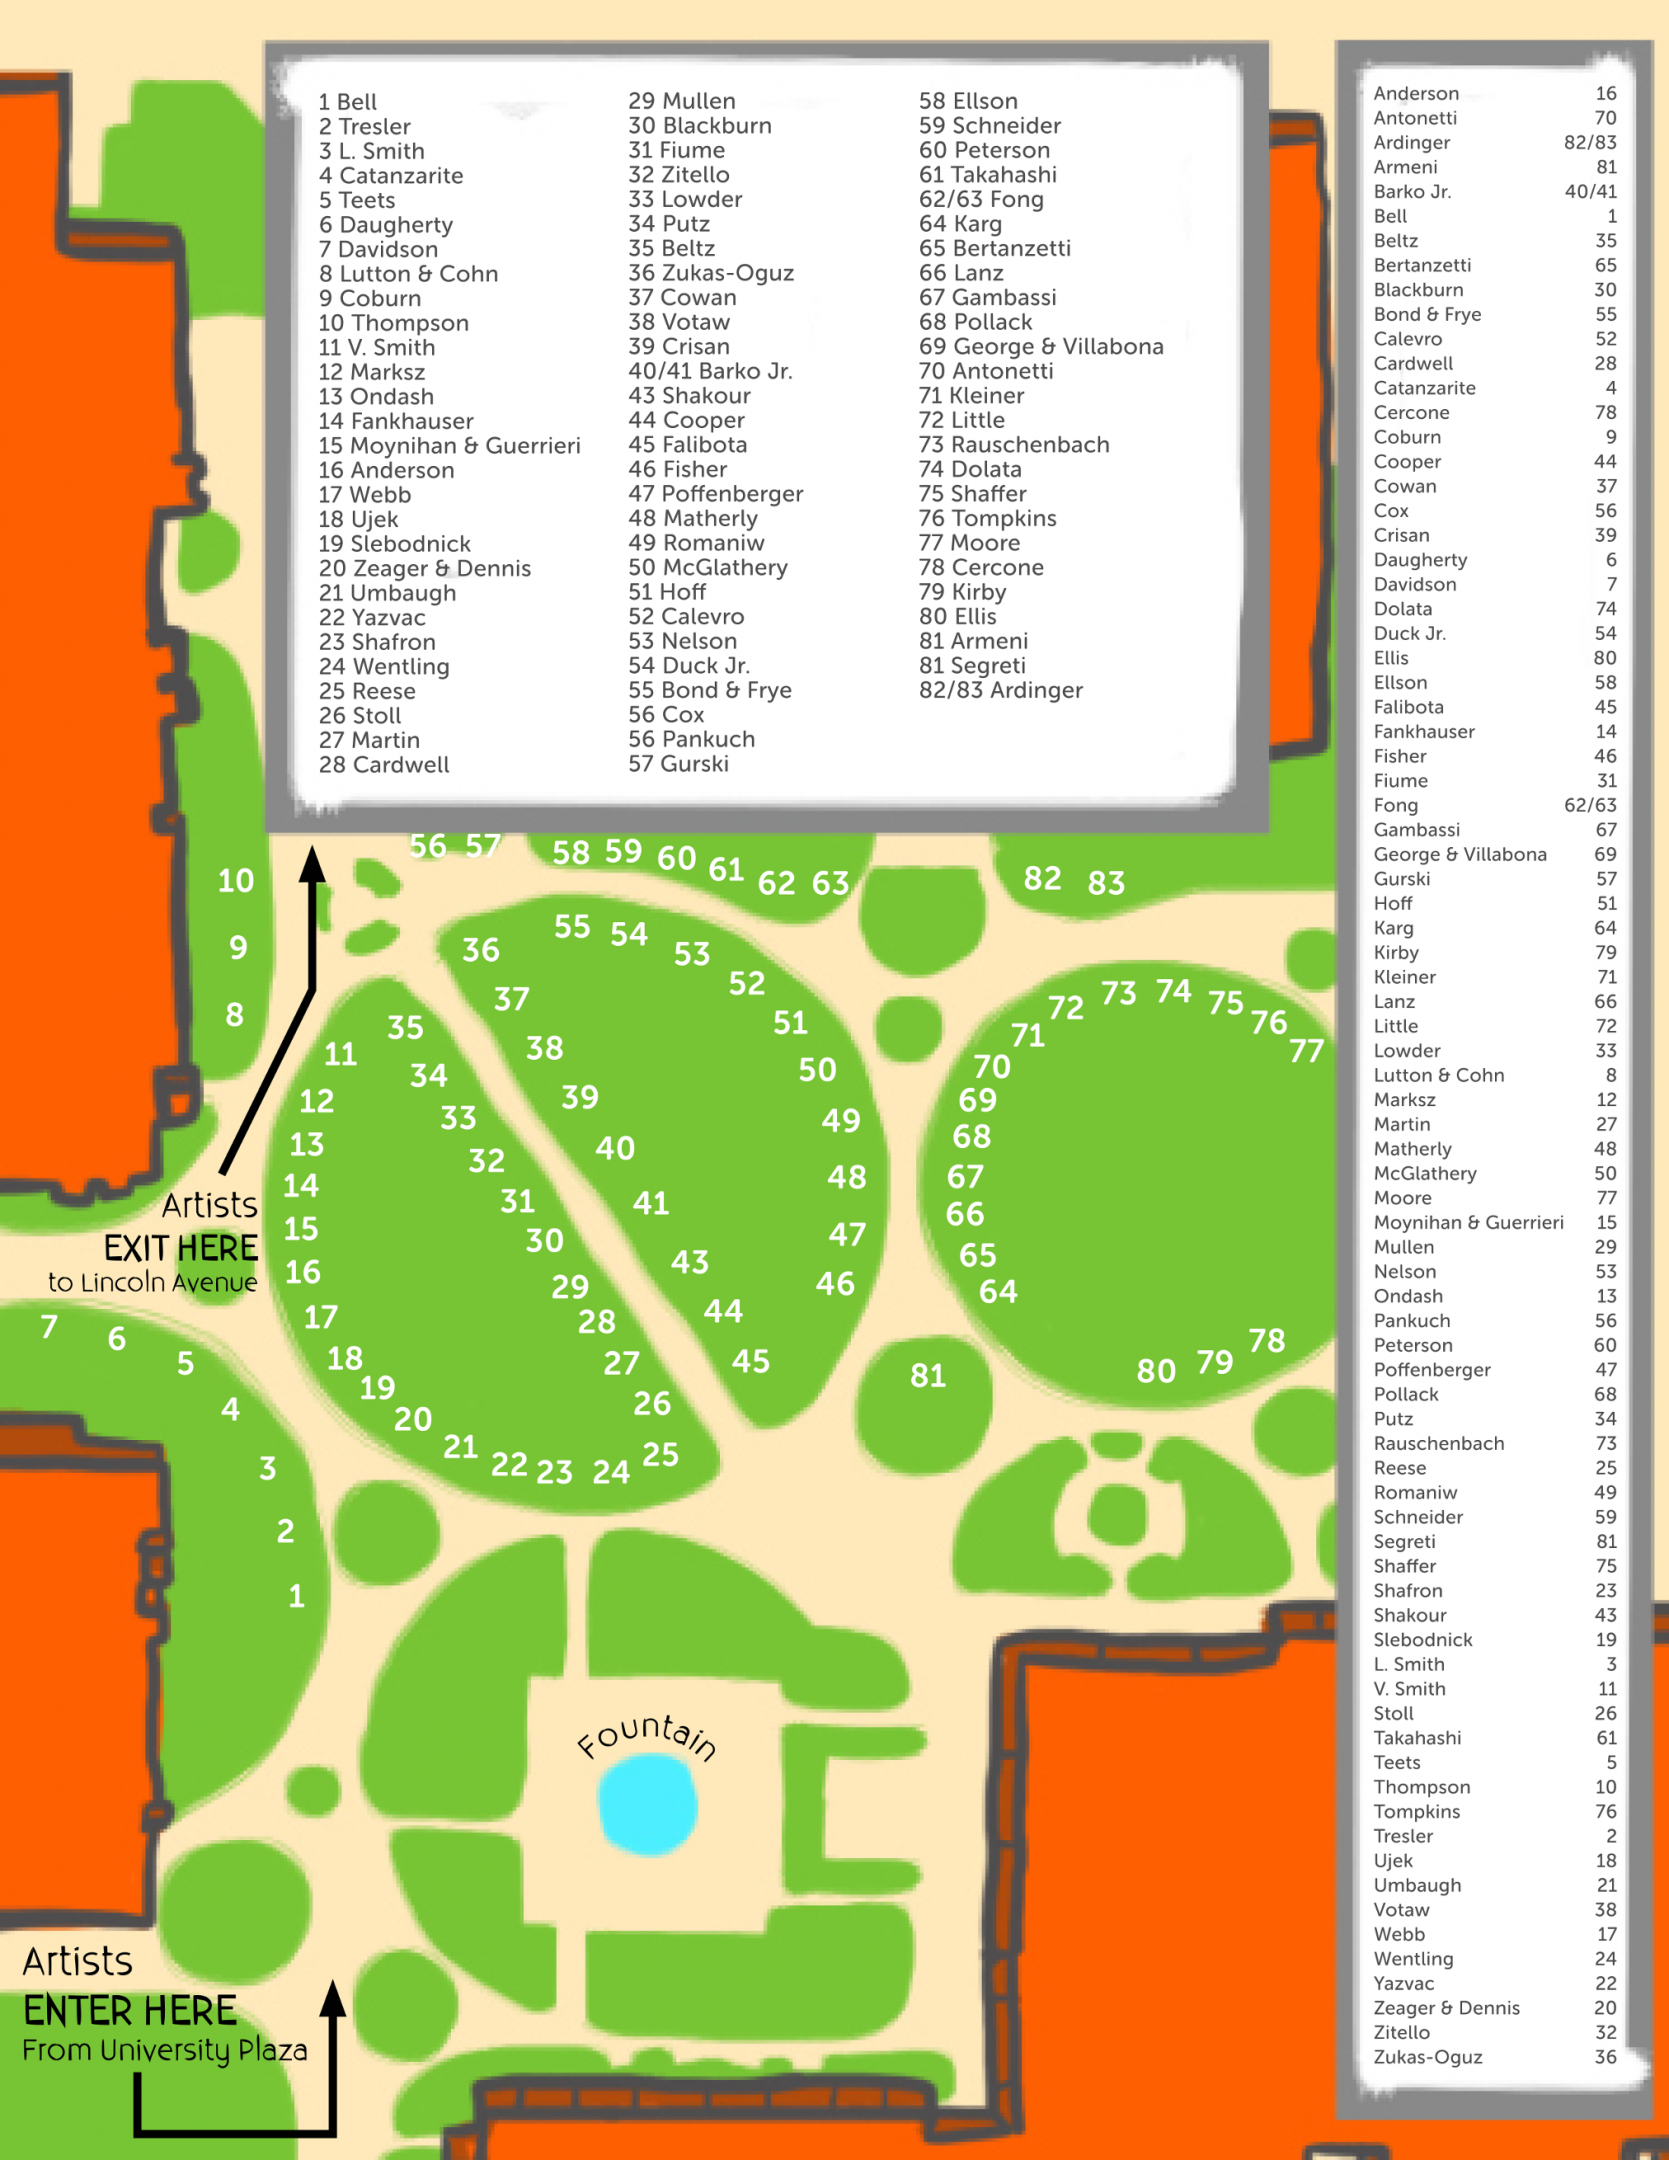 Summer Festival of the Arts Maps | YSU on akron campus map, maine campus map, ferris state university campus map, the ohio state university campus map, ohio state university main campus map, michigan state university msu campus map, vsu campus map, winona state university campus map, university of south alabama campus map, ysm campus map, cleveland state campus map, dwu campus map, penn state campus map, phoenix college campus map, u of i campus map, connecticut college campus map, university of alabama football parking map, su campus map, henderson state university campus map, youngstown university campus map,